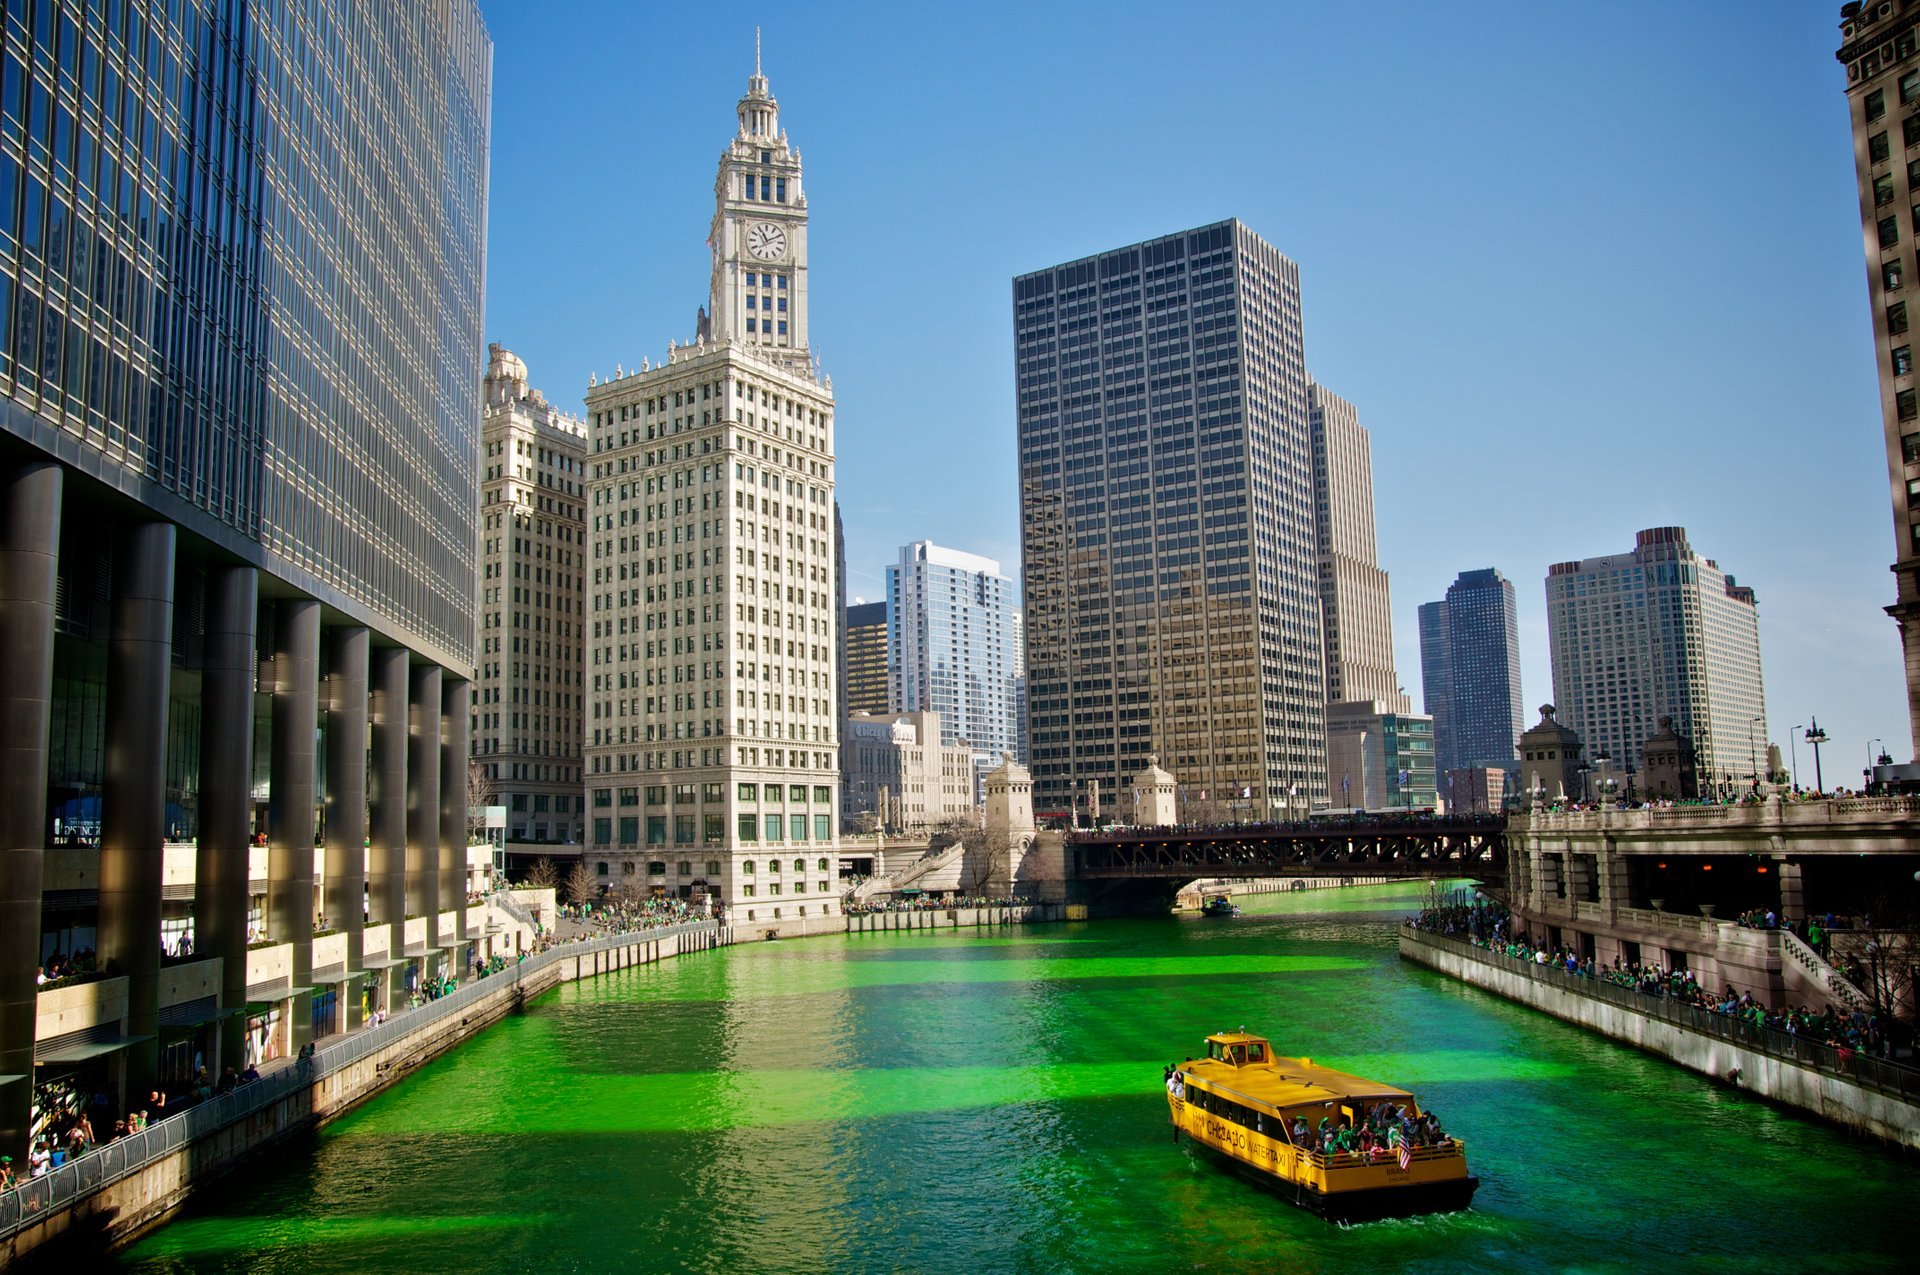 St. Paddy's Day in Chicago 2019 - Best Time